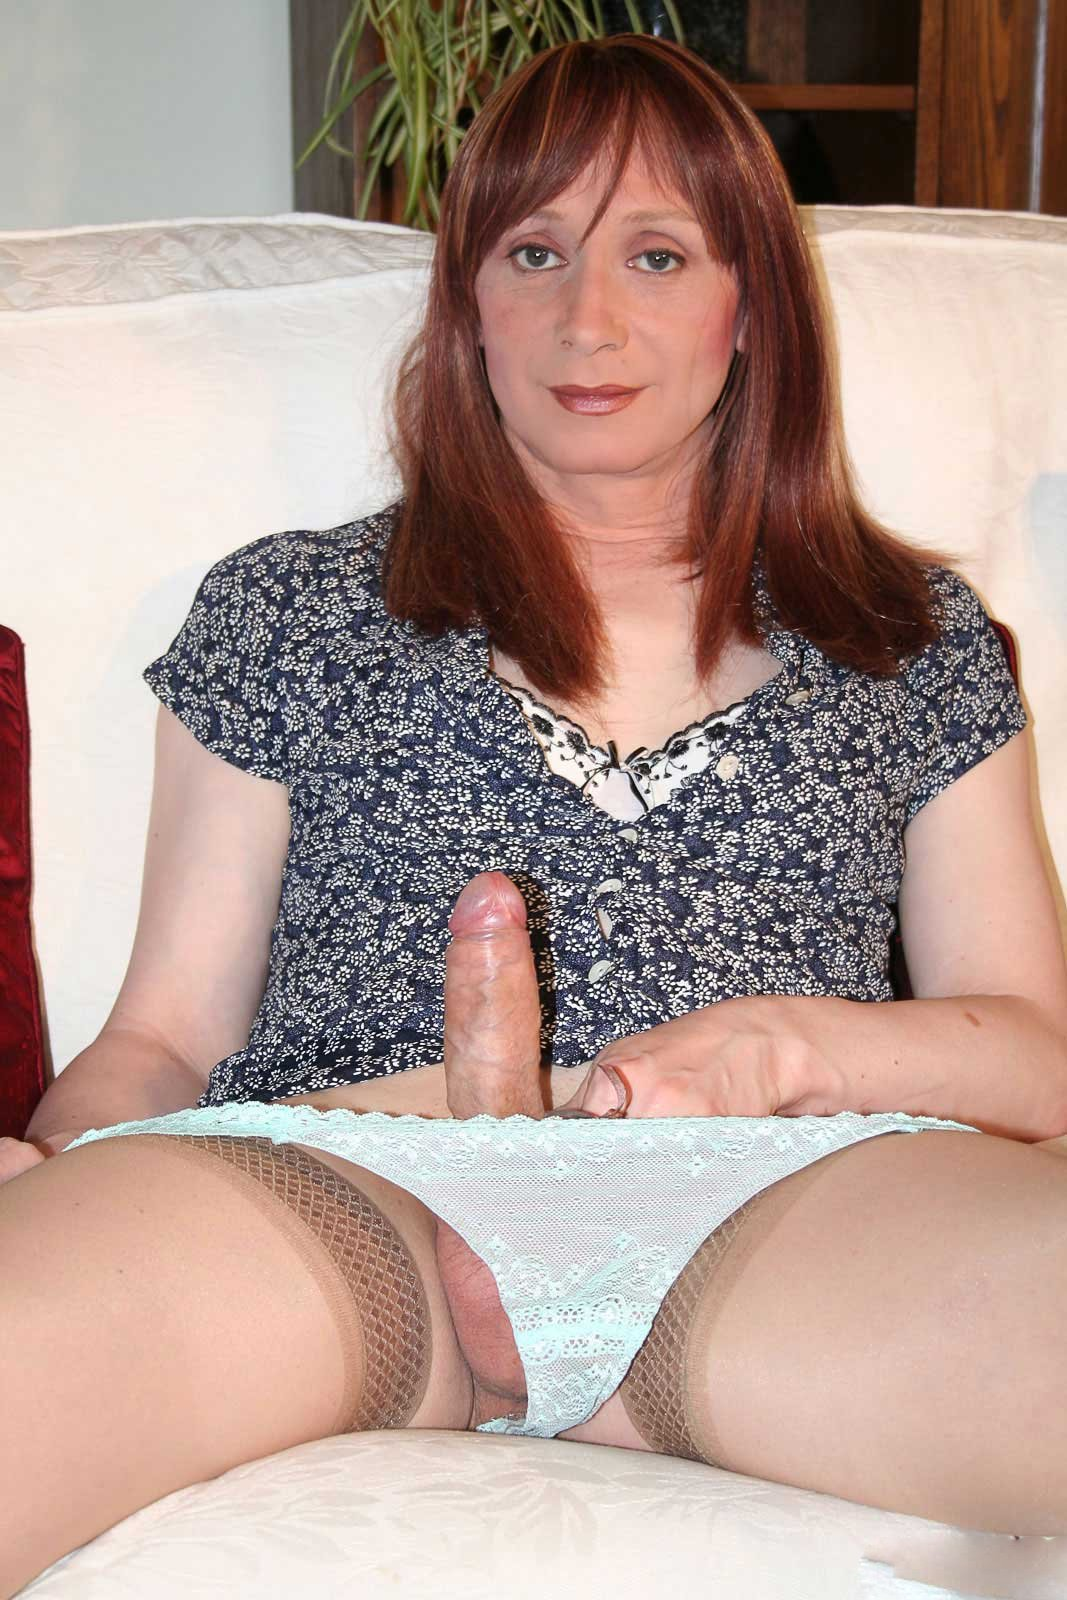 BerryTastycum from Greater London,United Kingdom